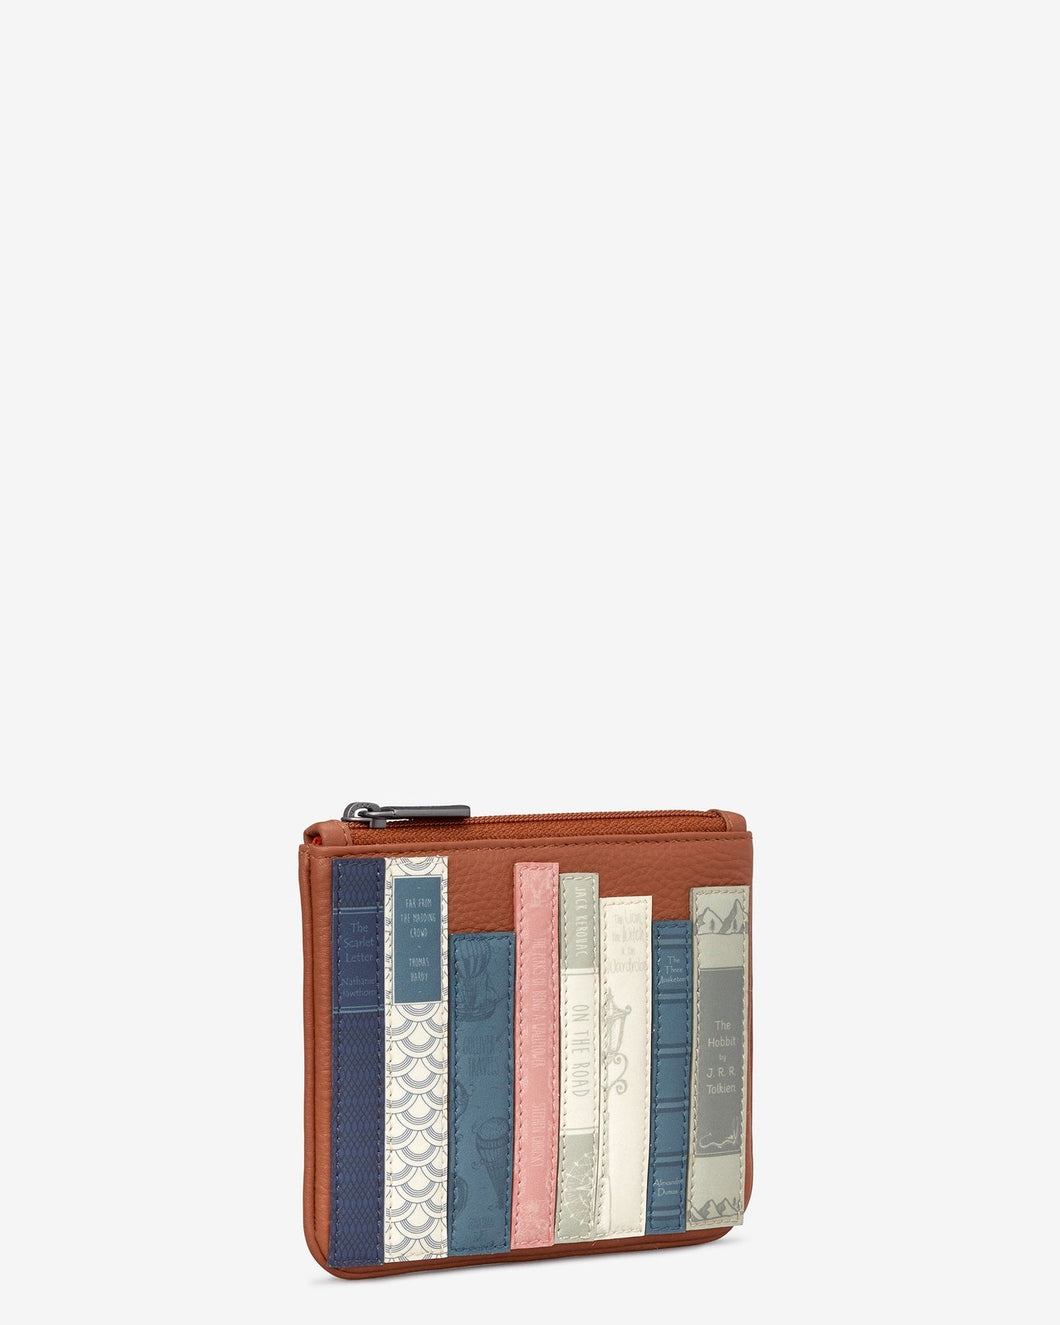 Yoshi Bookworm Tan Leather Caxton Purse - Sands Boutique clothing and gifts